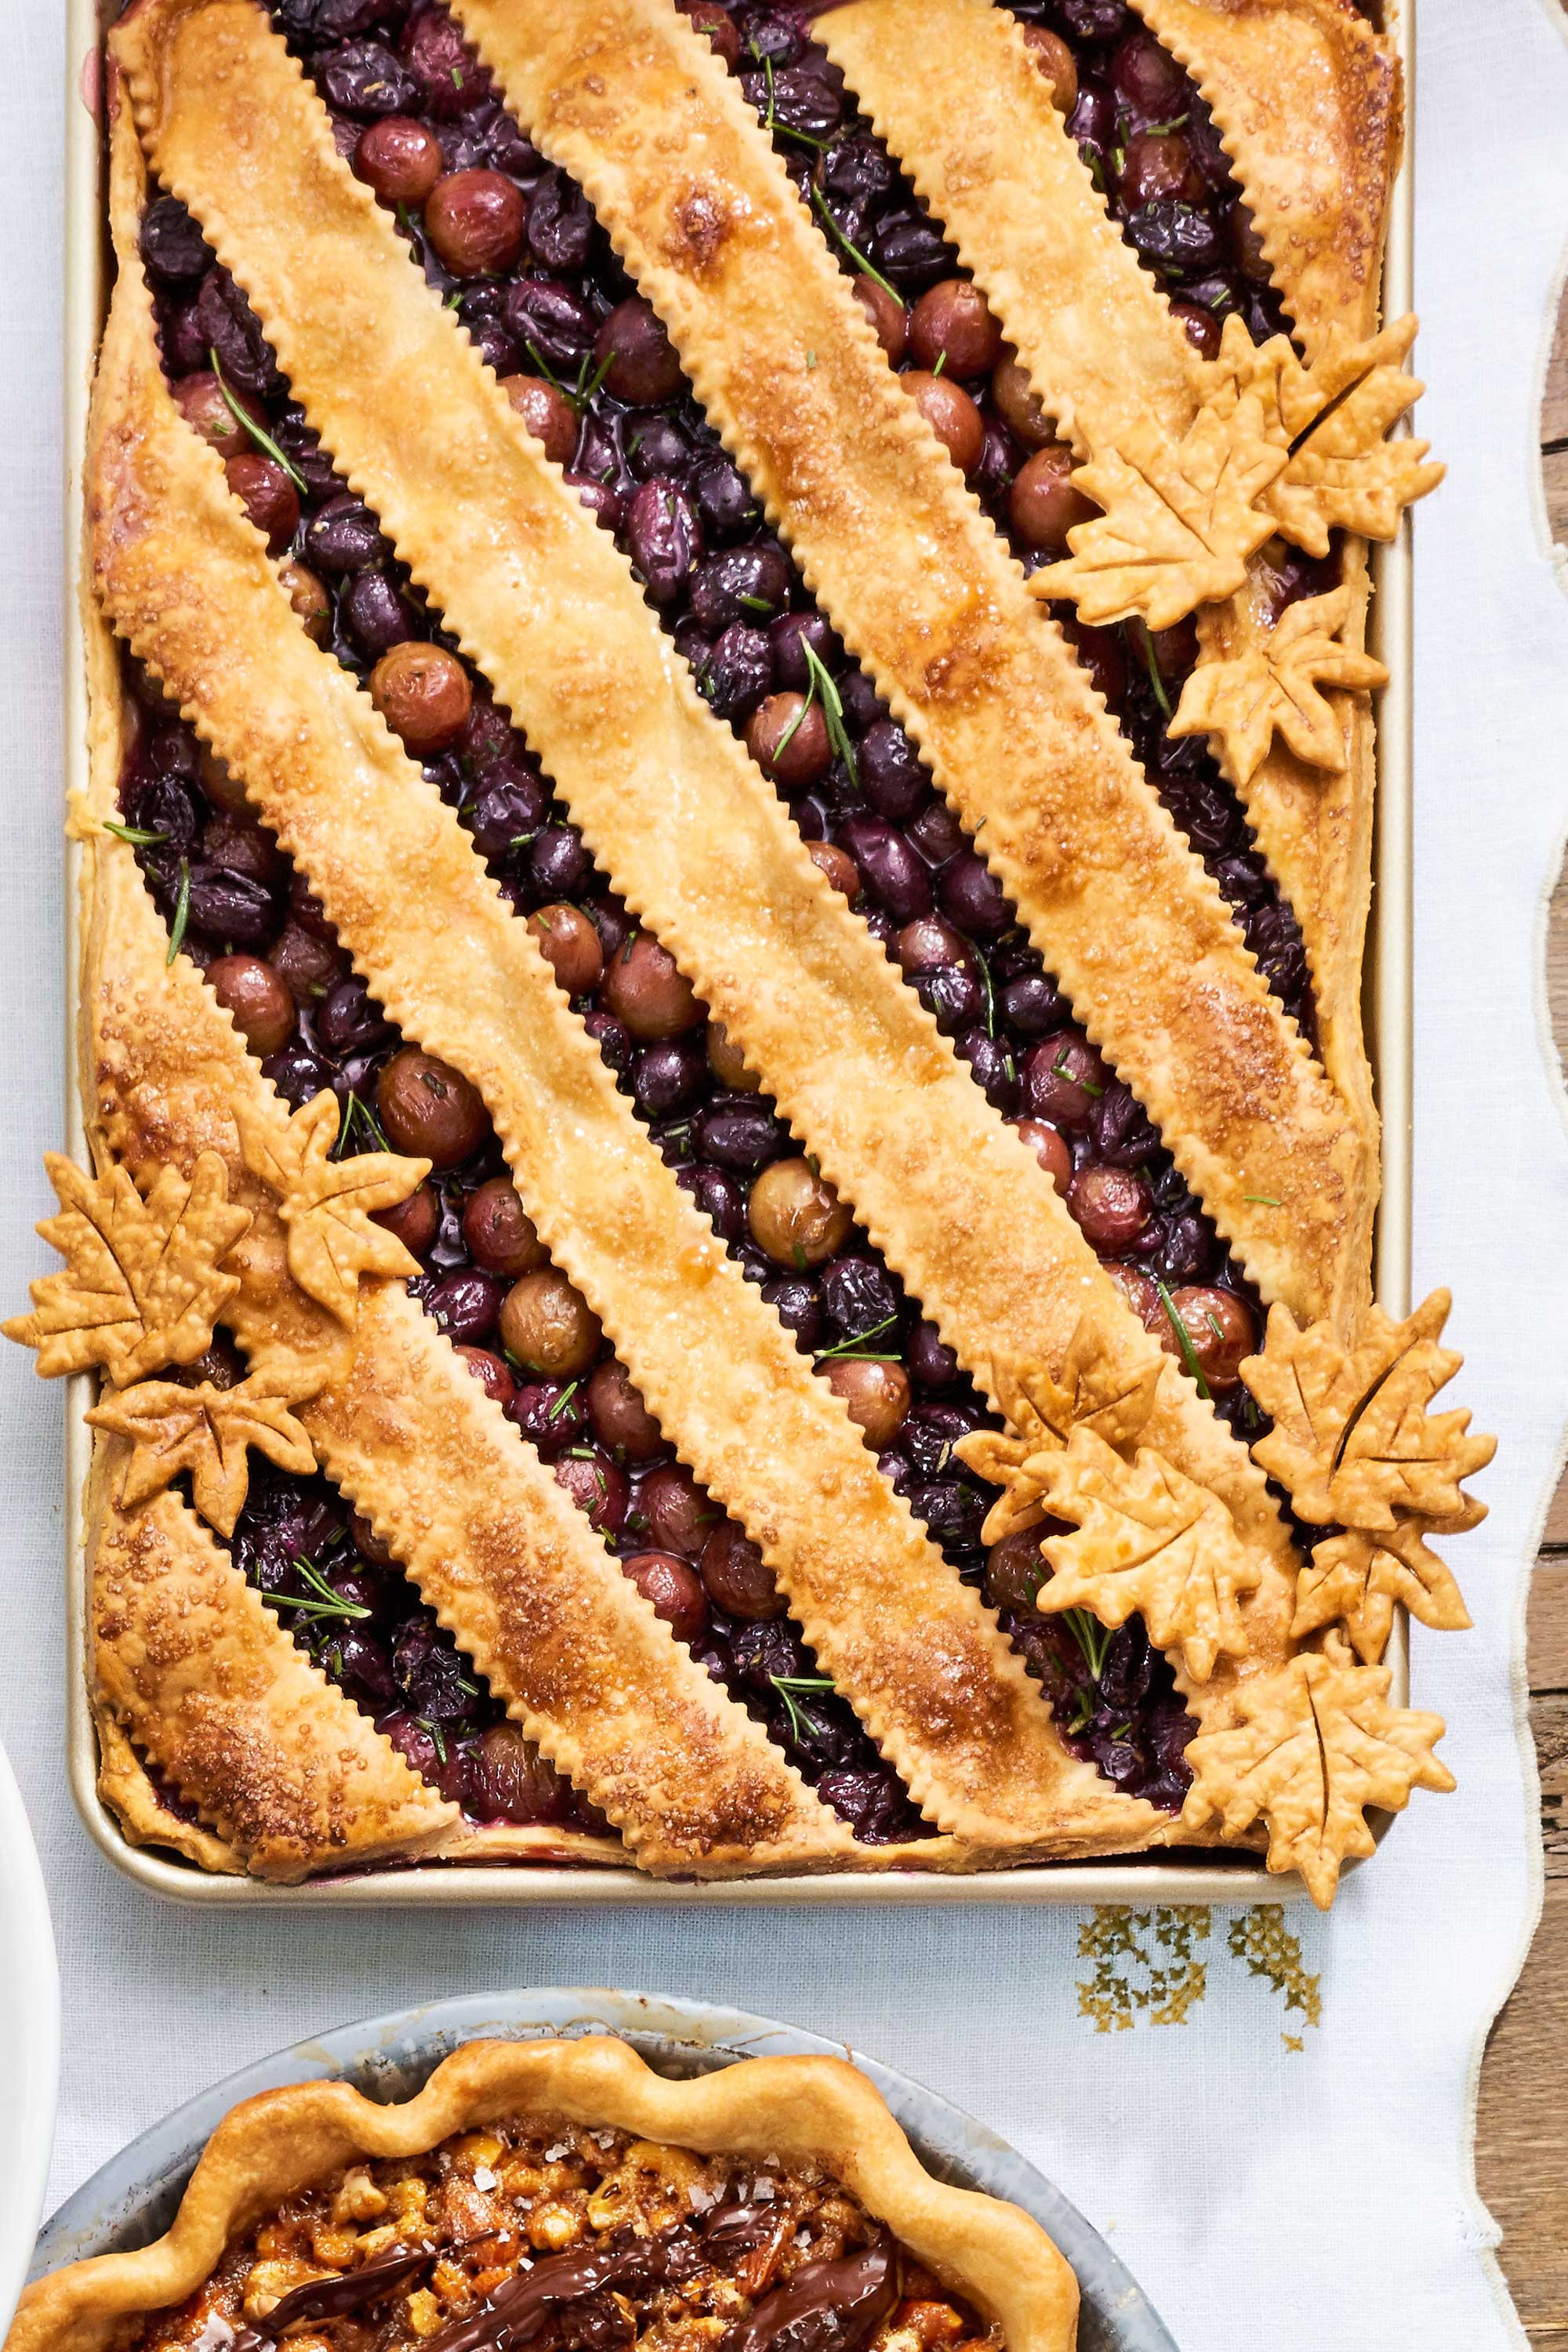 Best Thanksgiving Pie Recipes  35 Best Thanksgiving Pies Recipes and Ideas for